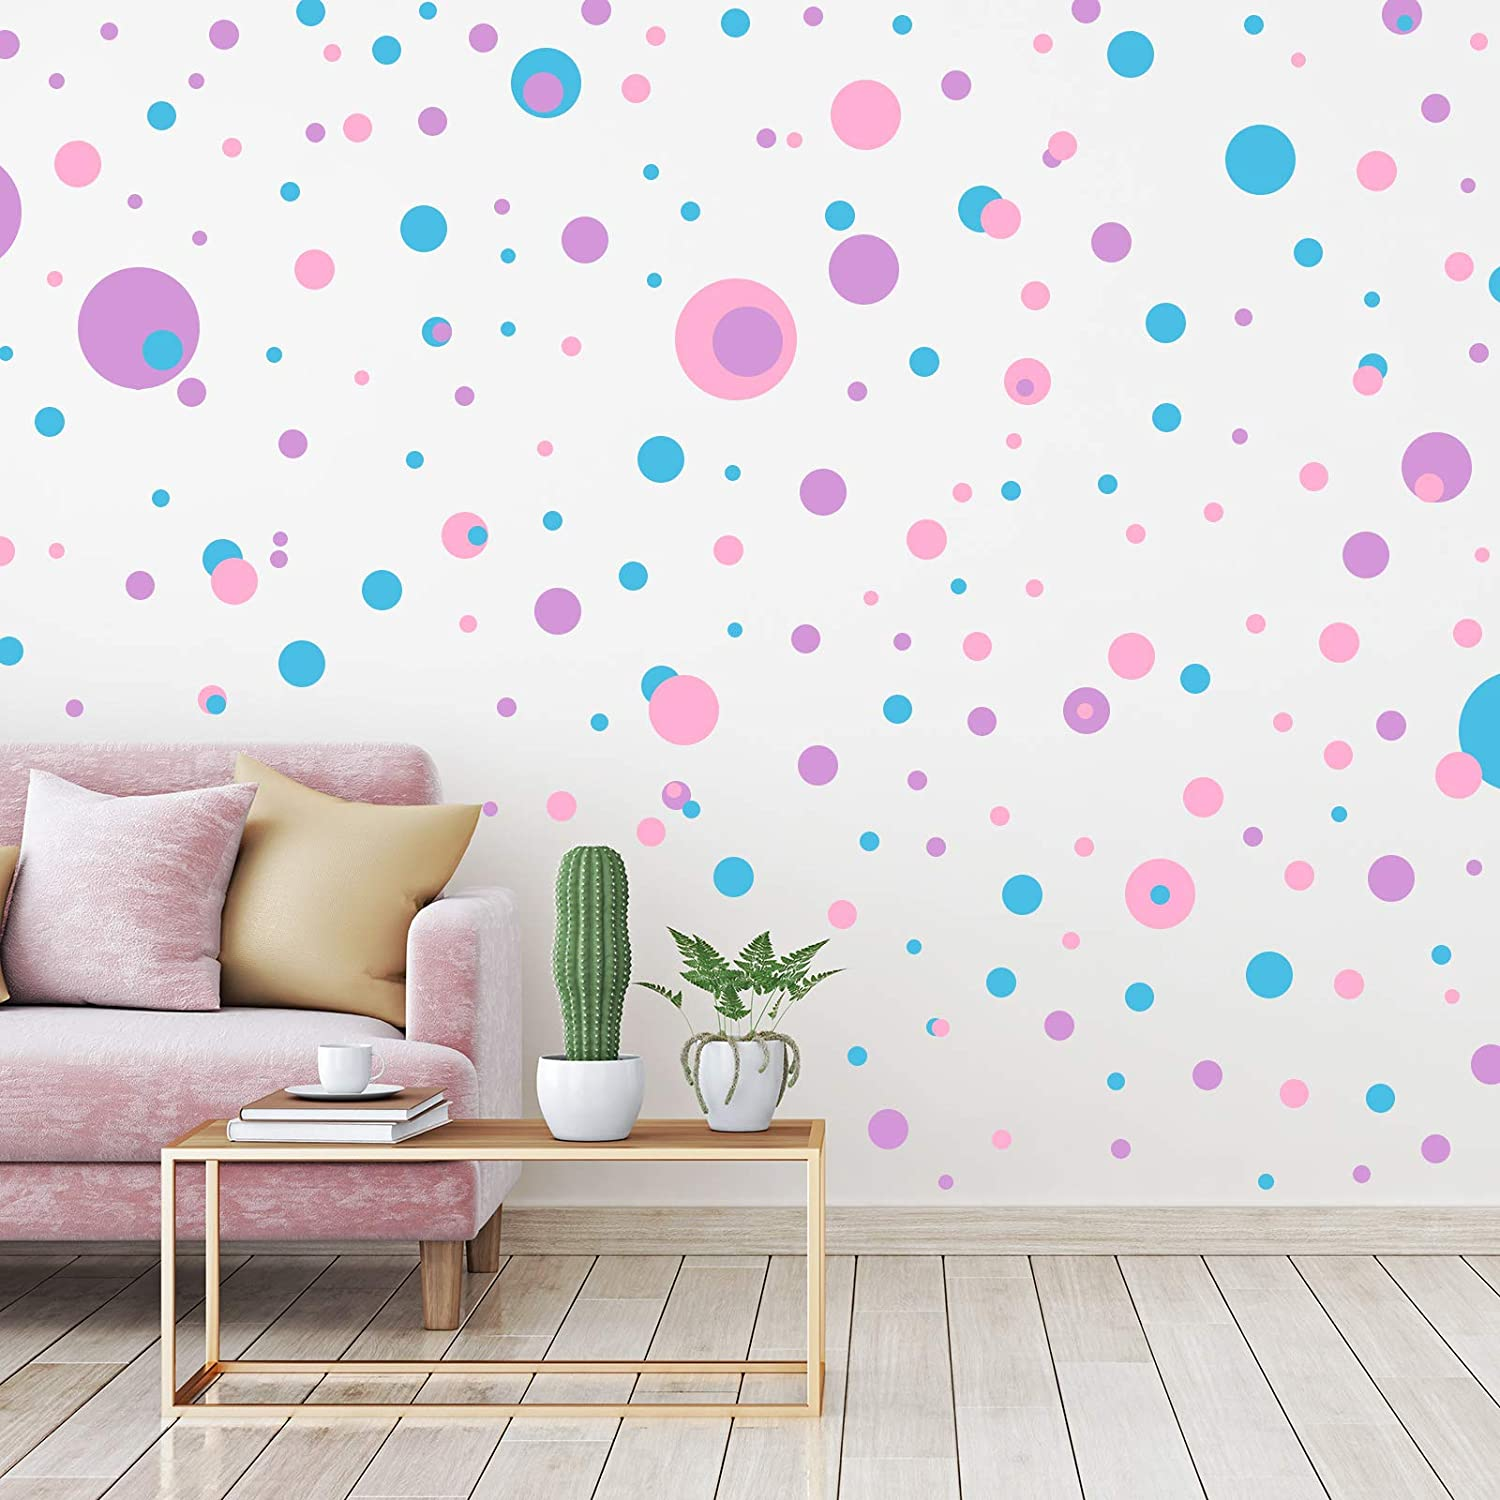 264 Pieces Polka Dots Wall Sticker Circle Wall Decal for Kids Bedroom Living Room, Classroom, Playroom Decor Removable Vinyl Wall Stickers Dots Wall Decals, 8 Different Size (Lilac, Pink, Mint Green)